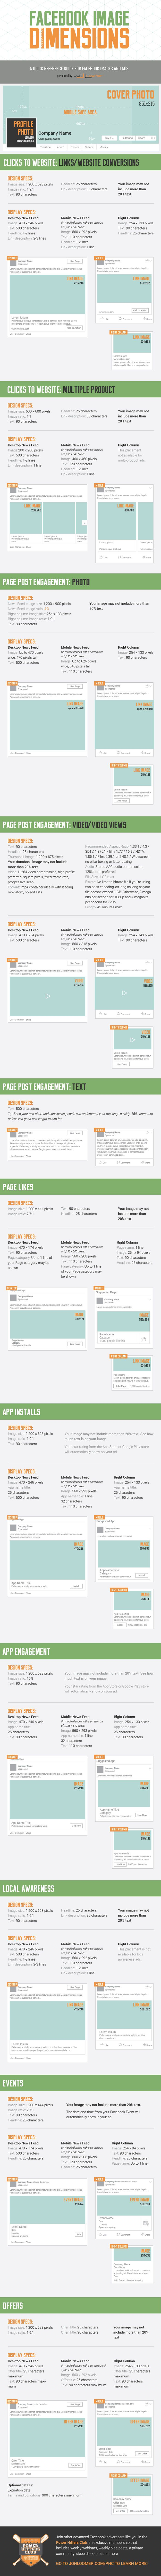 Need a Facebook Cheat Sheet? Here are ALL Facebook sizes and dimensions on a comprehensive infographic, updated April 2014 - ads too. Pin this for reference!